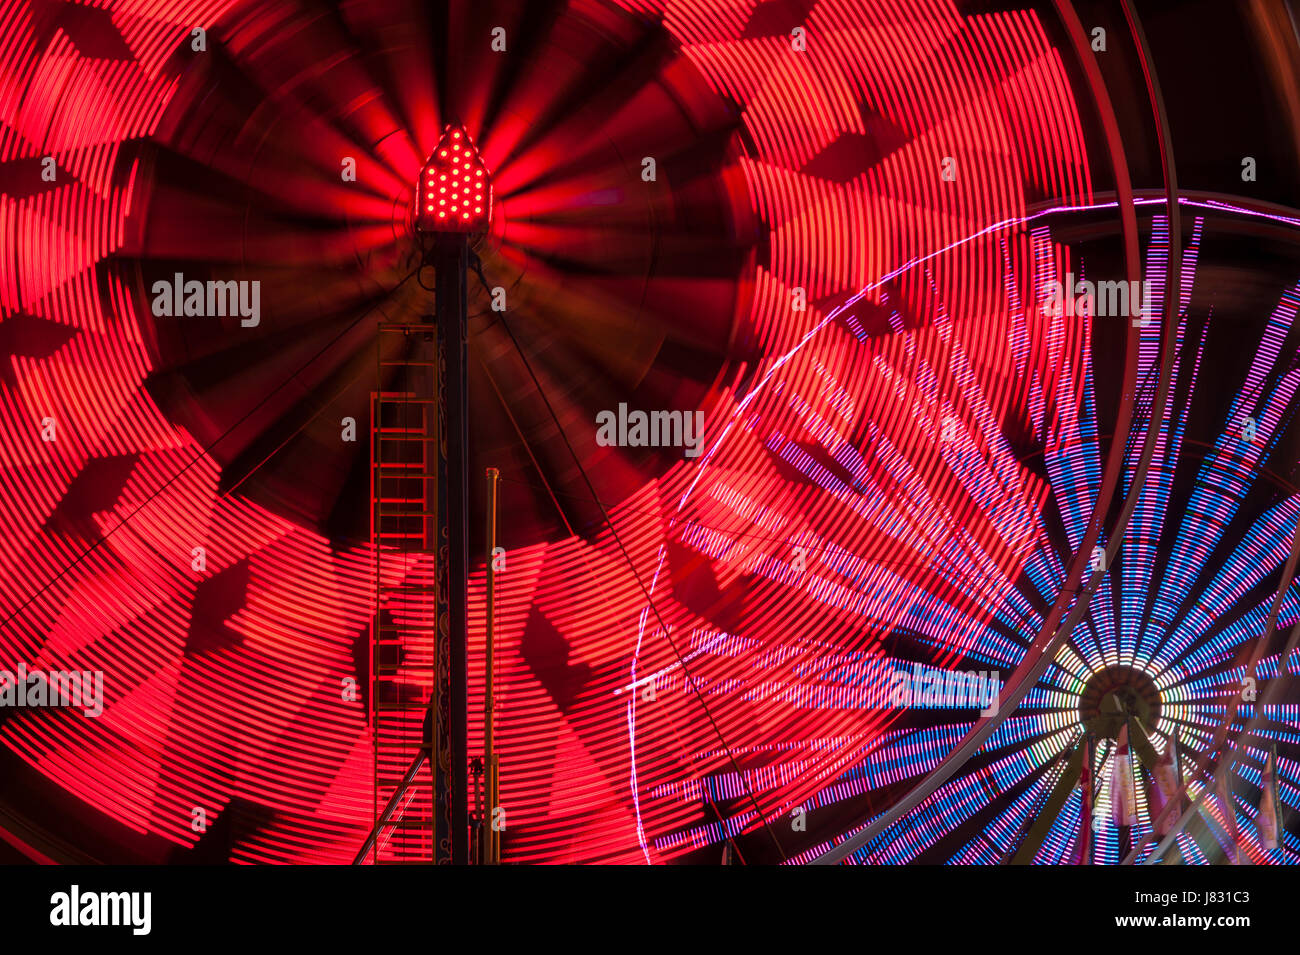 Ferris wheel in motion with multicolors and abstract patterns of colors Stock Photo